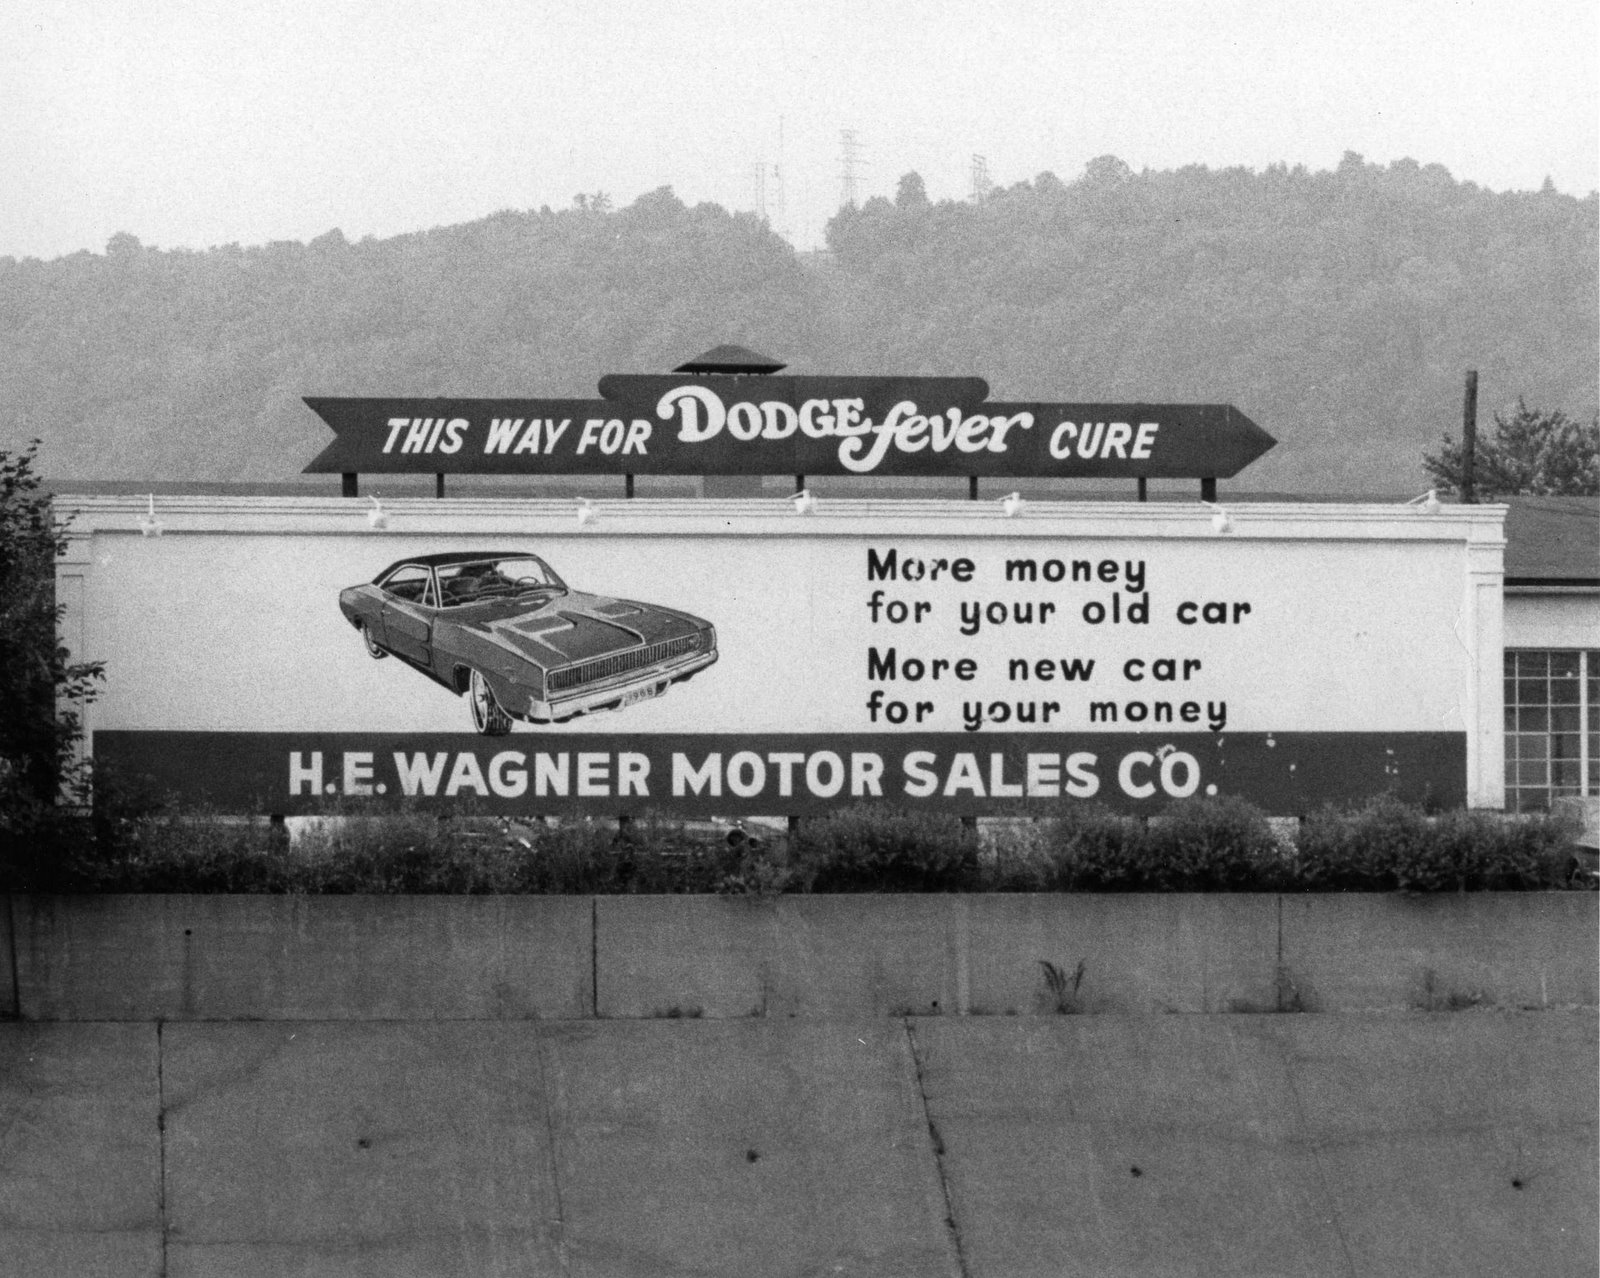 Vintage Johnstown This Way For Dodge Fever Cure